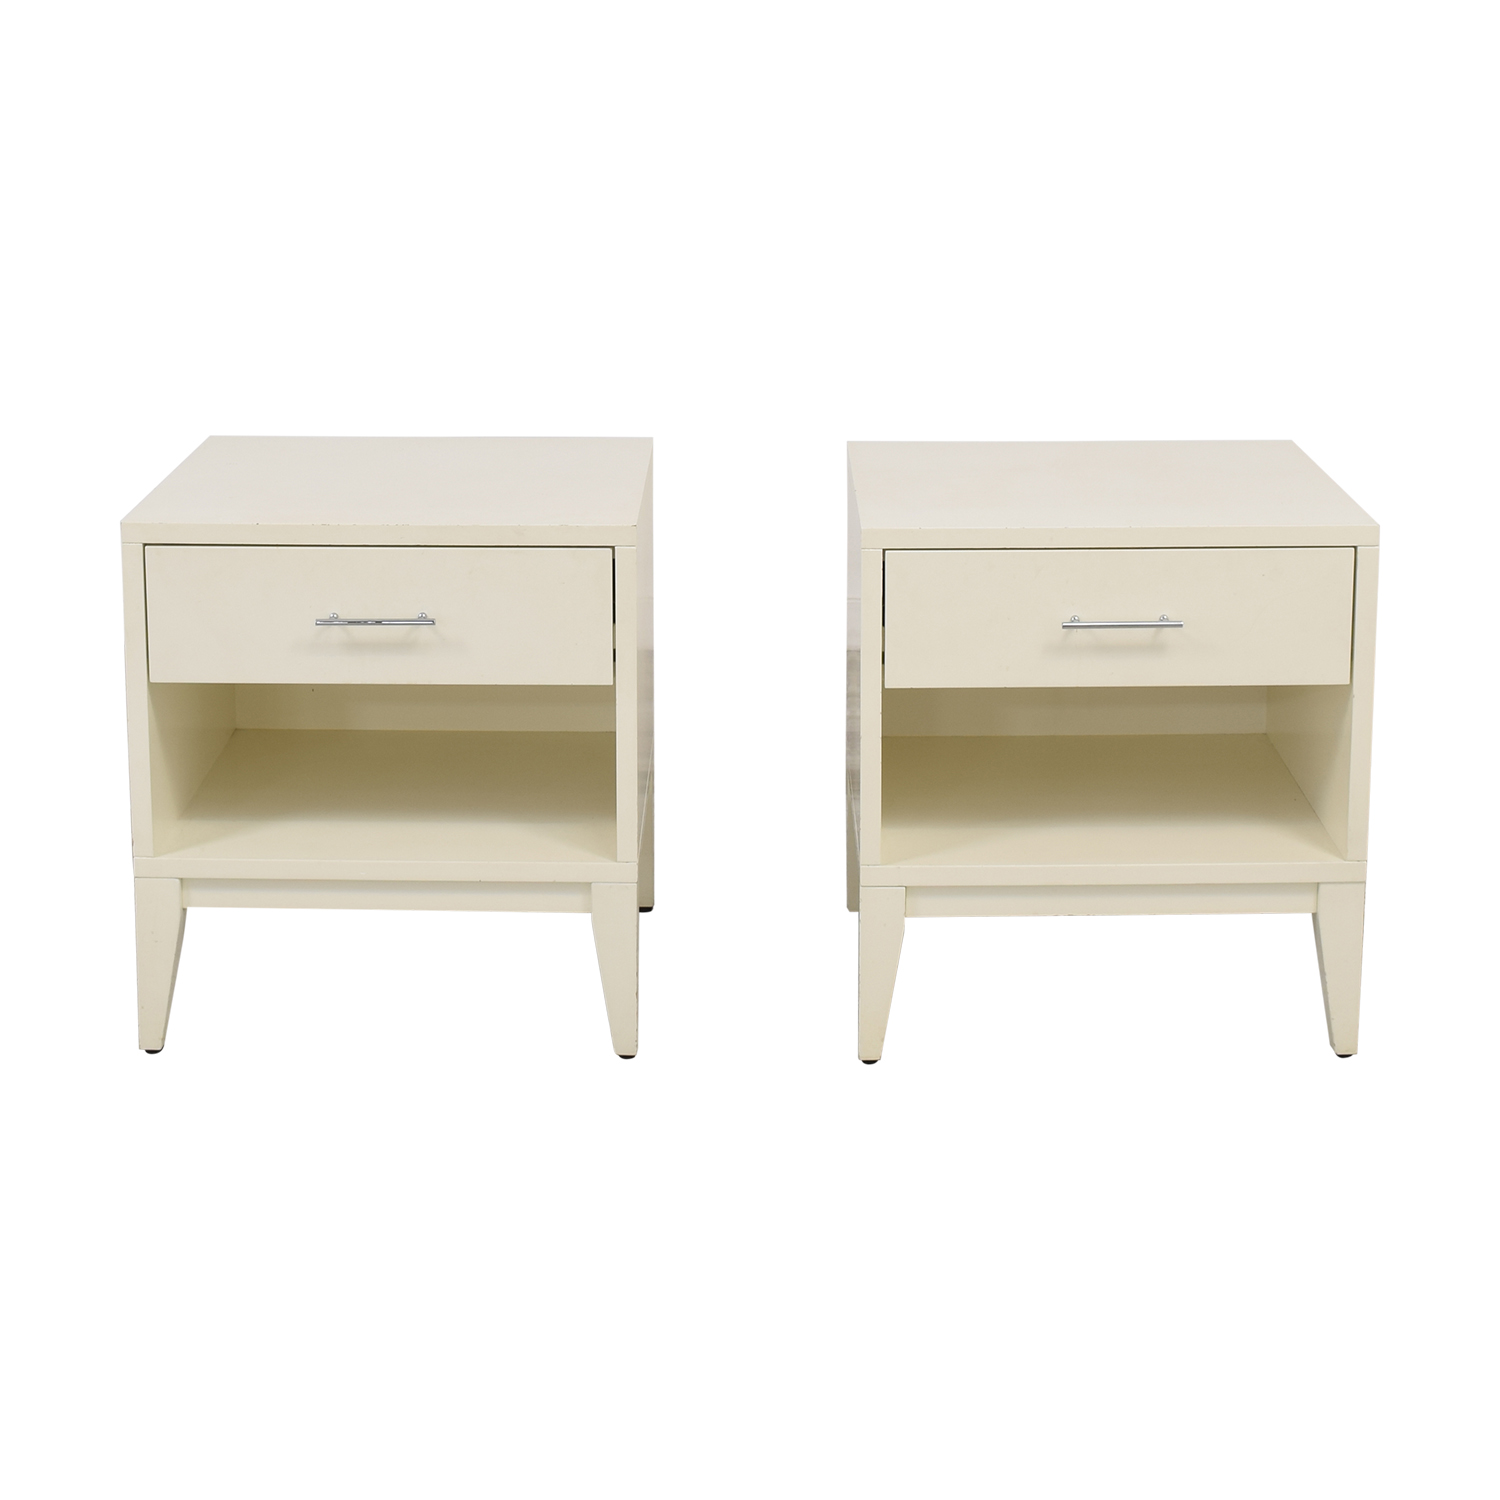 West Elm Narrow Leg End Tables / Tables